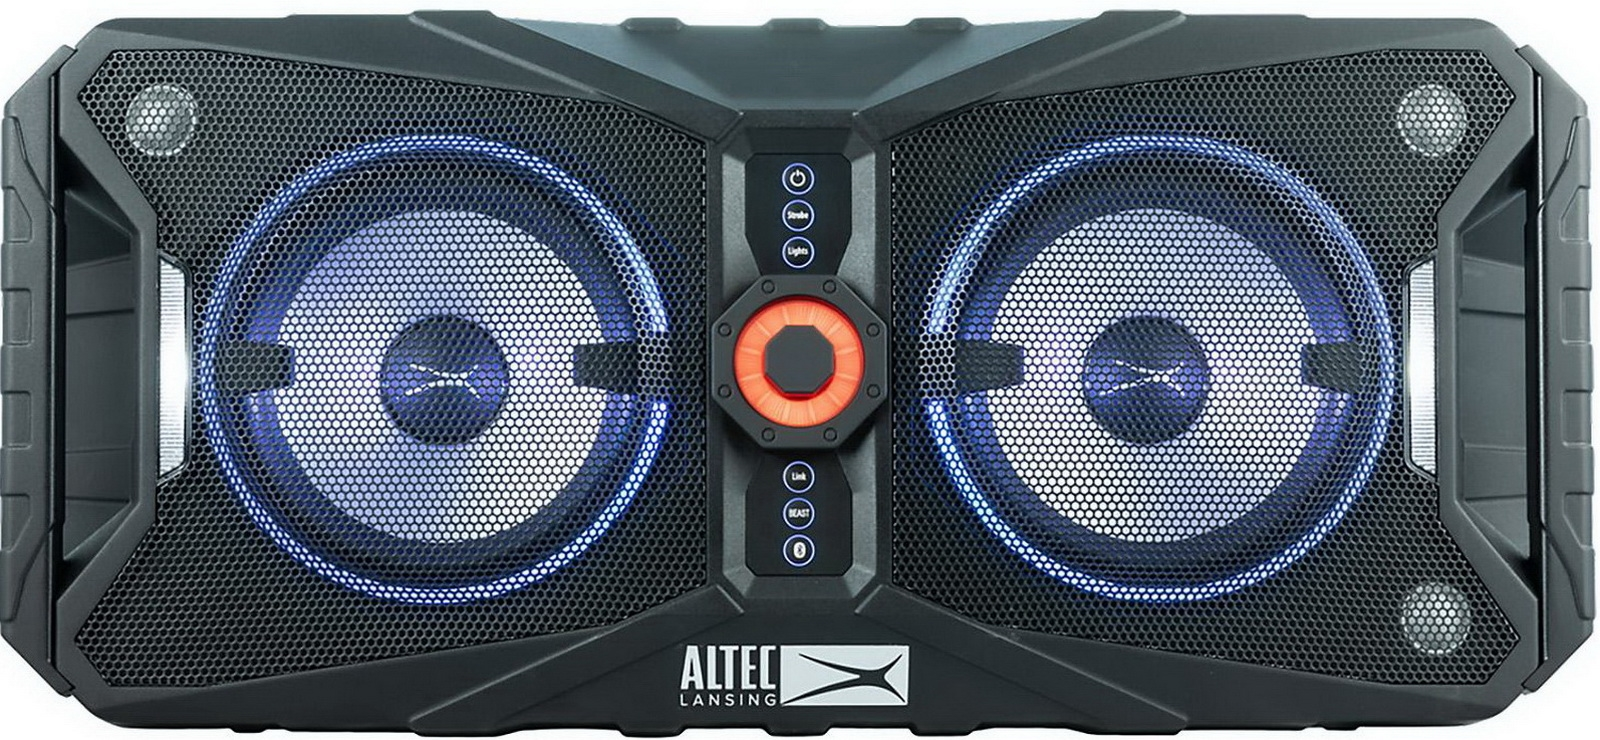 Altec Lansing Floating Bluetooth Speaker Xpedition 10 Portable Waterproof